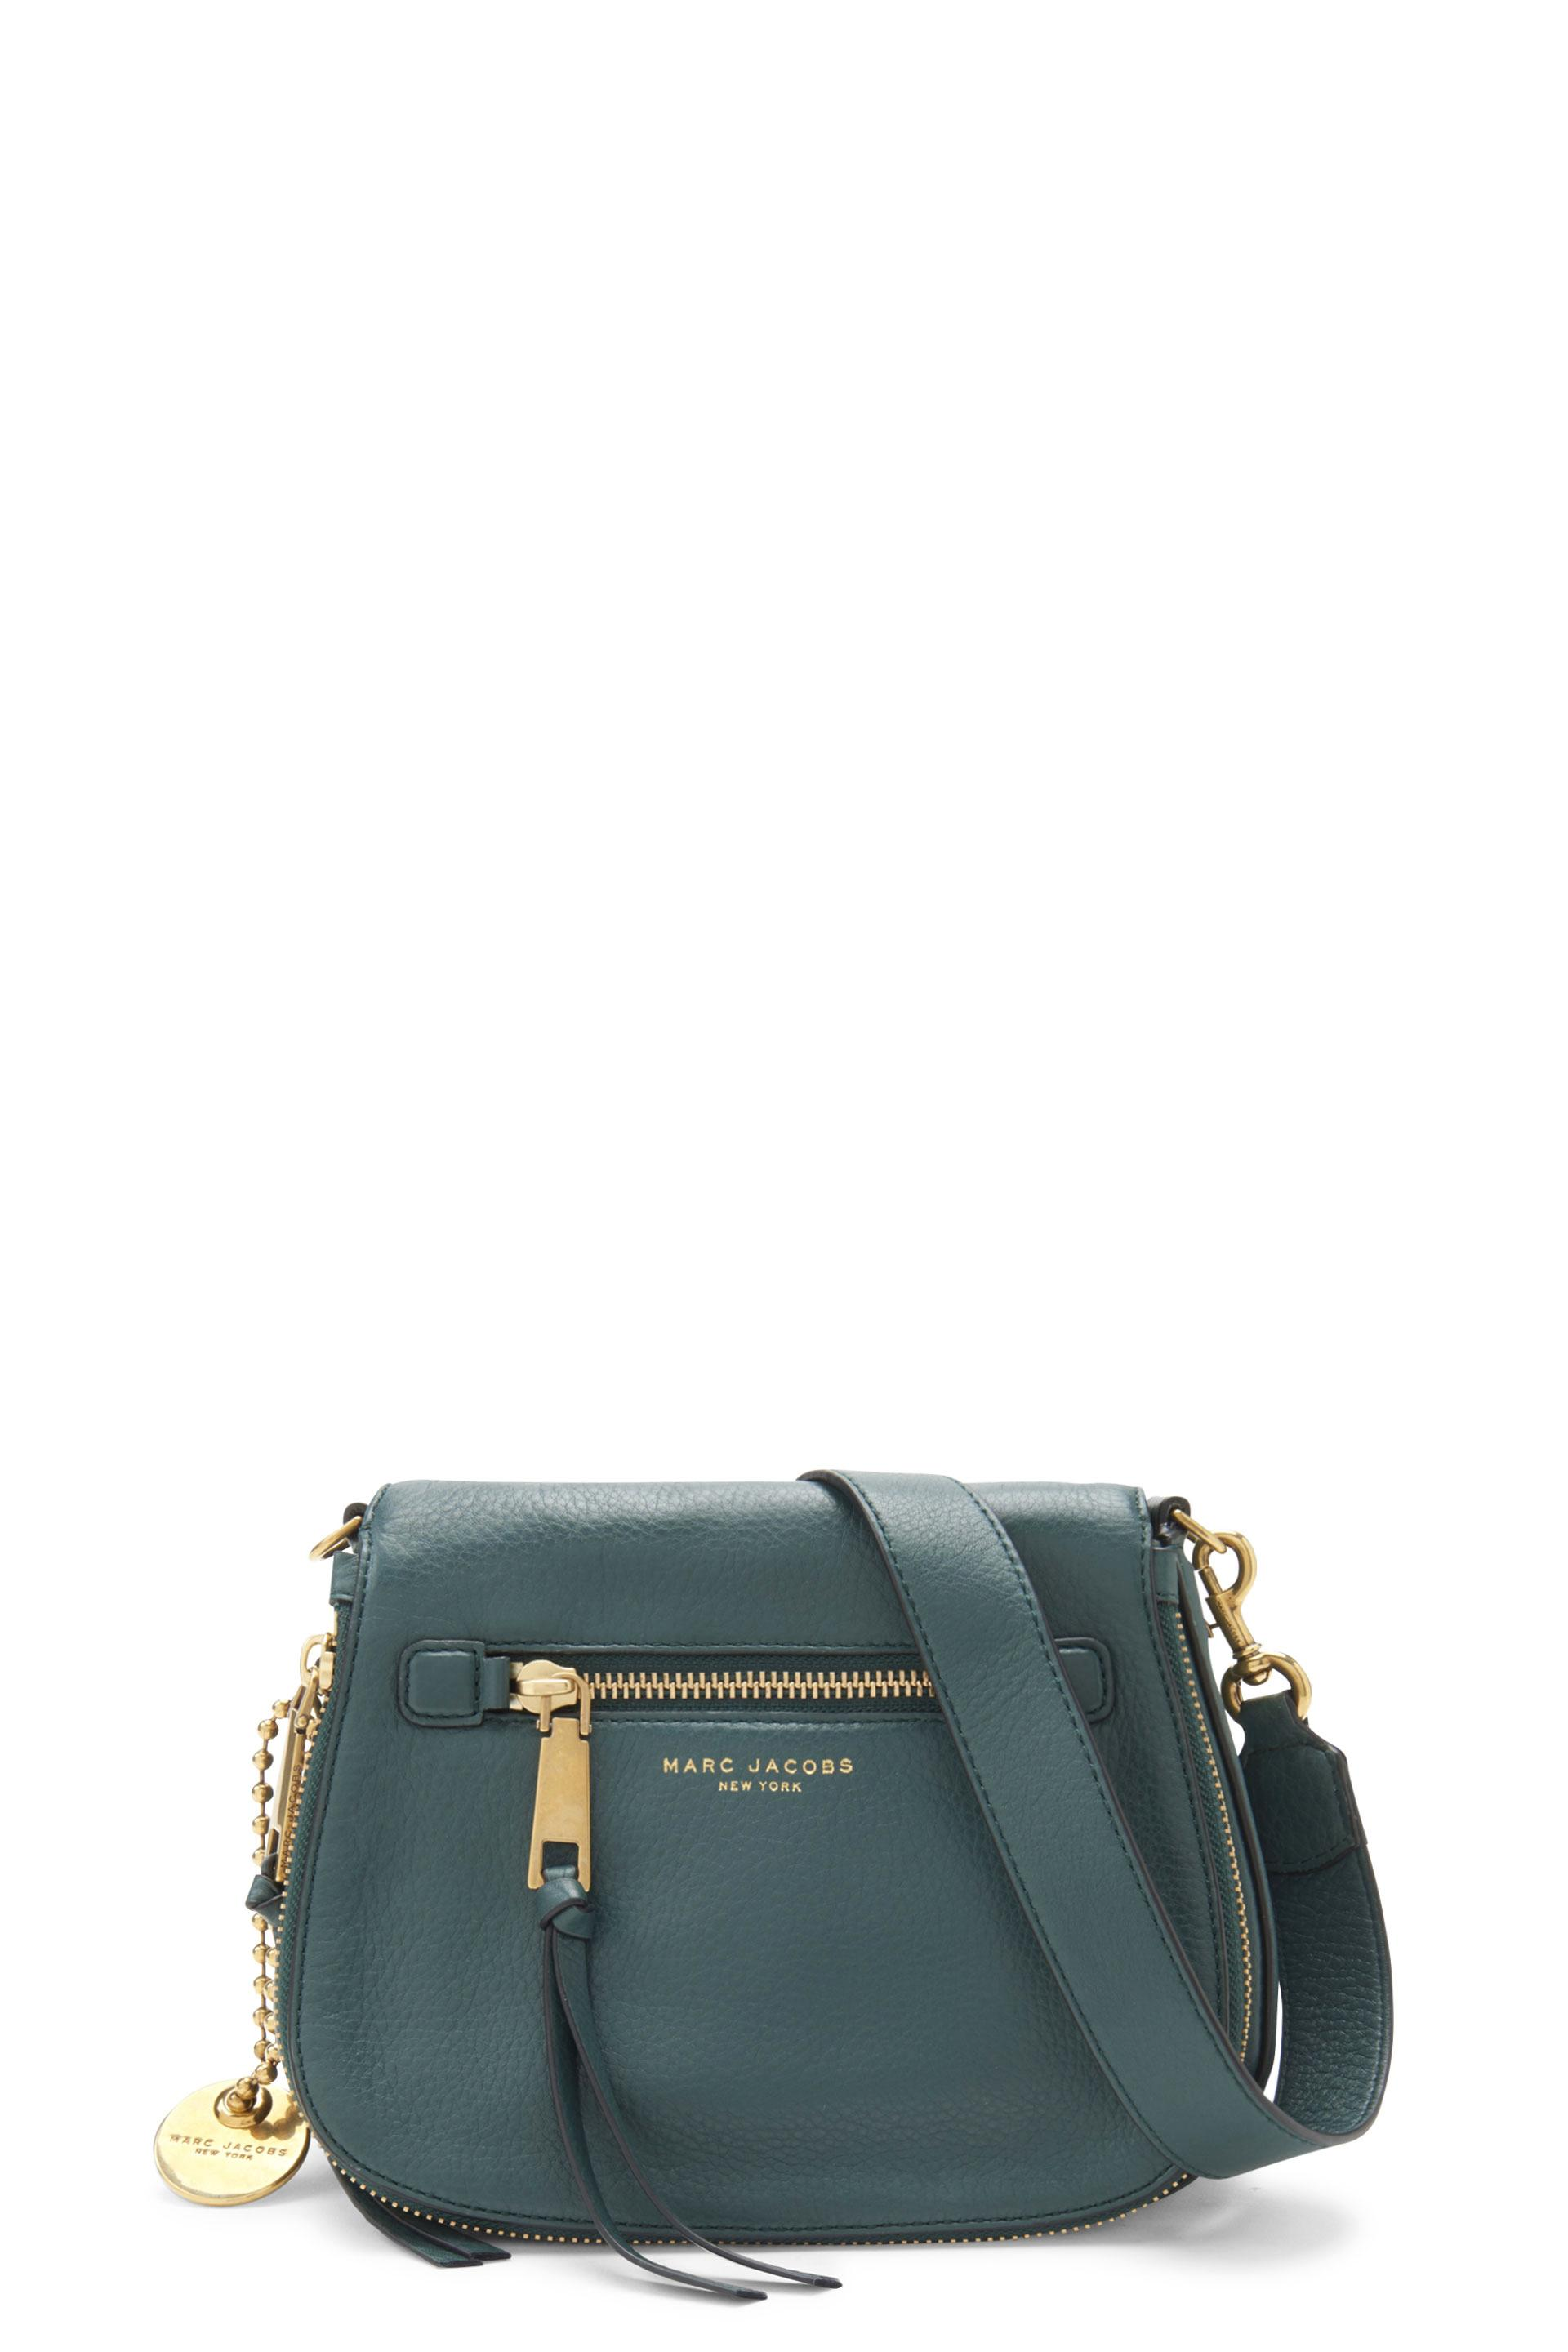 f8b7609416d Marc Jacobs Recruit Small Leather Saddle Bag